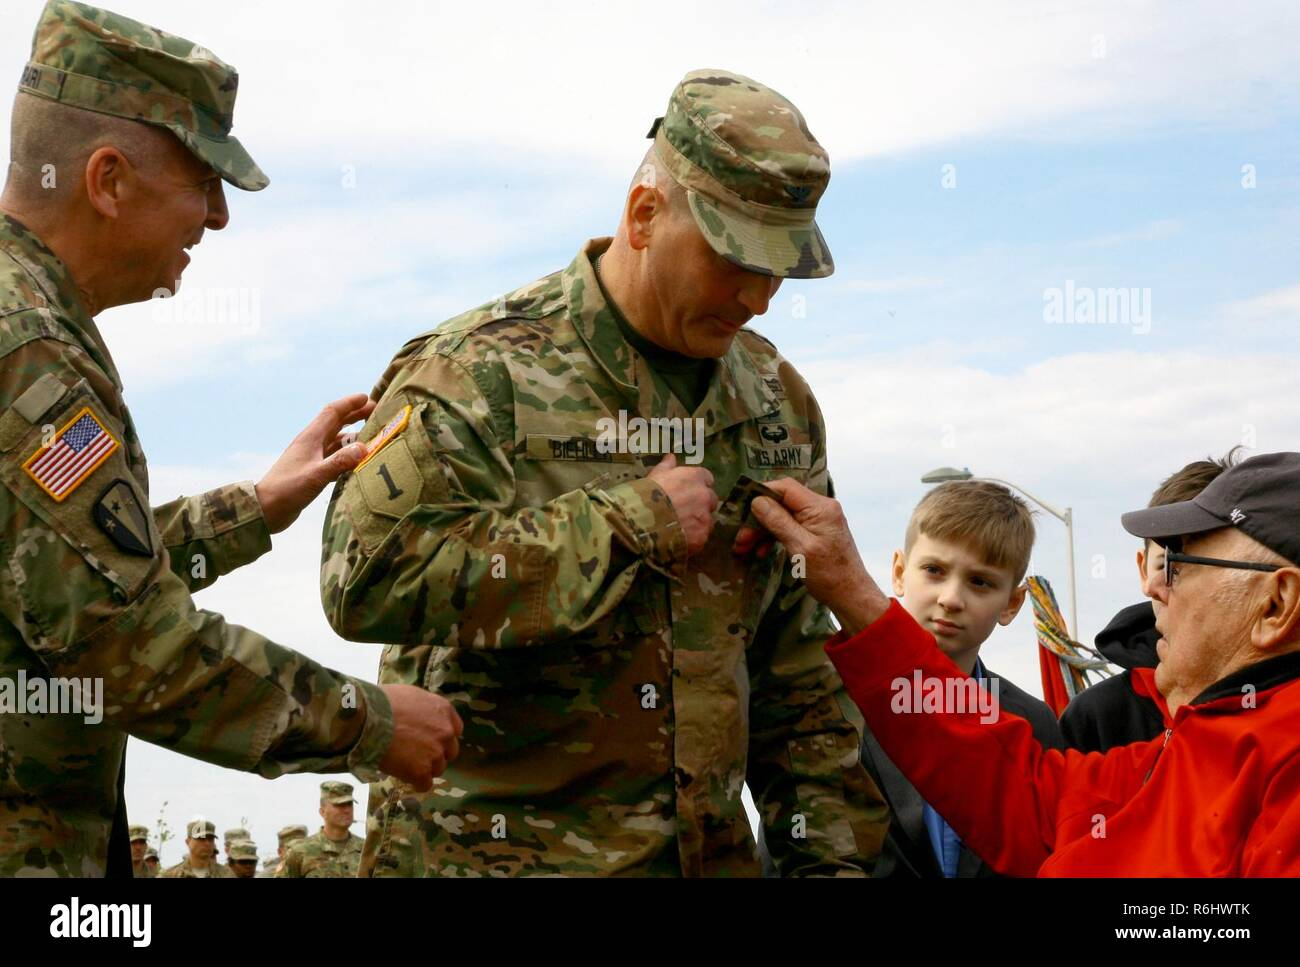 New York Army National Guard Brig. Gen. Joseph Biehler, the outgoing 27th Infantry Brigade Combat Team commander receives his new rank insignia from his father, John Biehler while being promoted to the rank of brigadier general during a change-of-command ceremony at Fort Drum, N.Y. , May 21 2017. Following his tenure with the 27th IBCT, Biehler will serve as the 42nd Infantry Division's executive officer. Stock Photo